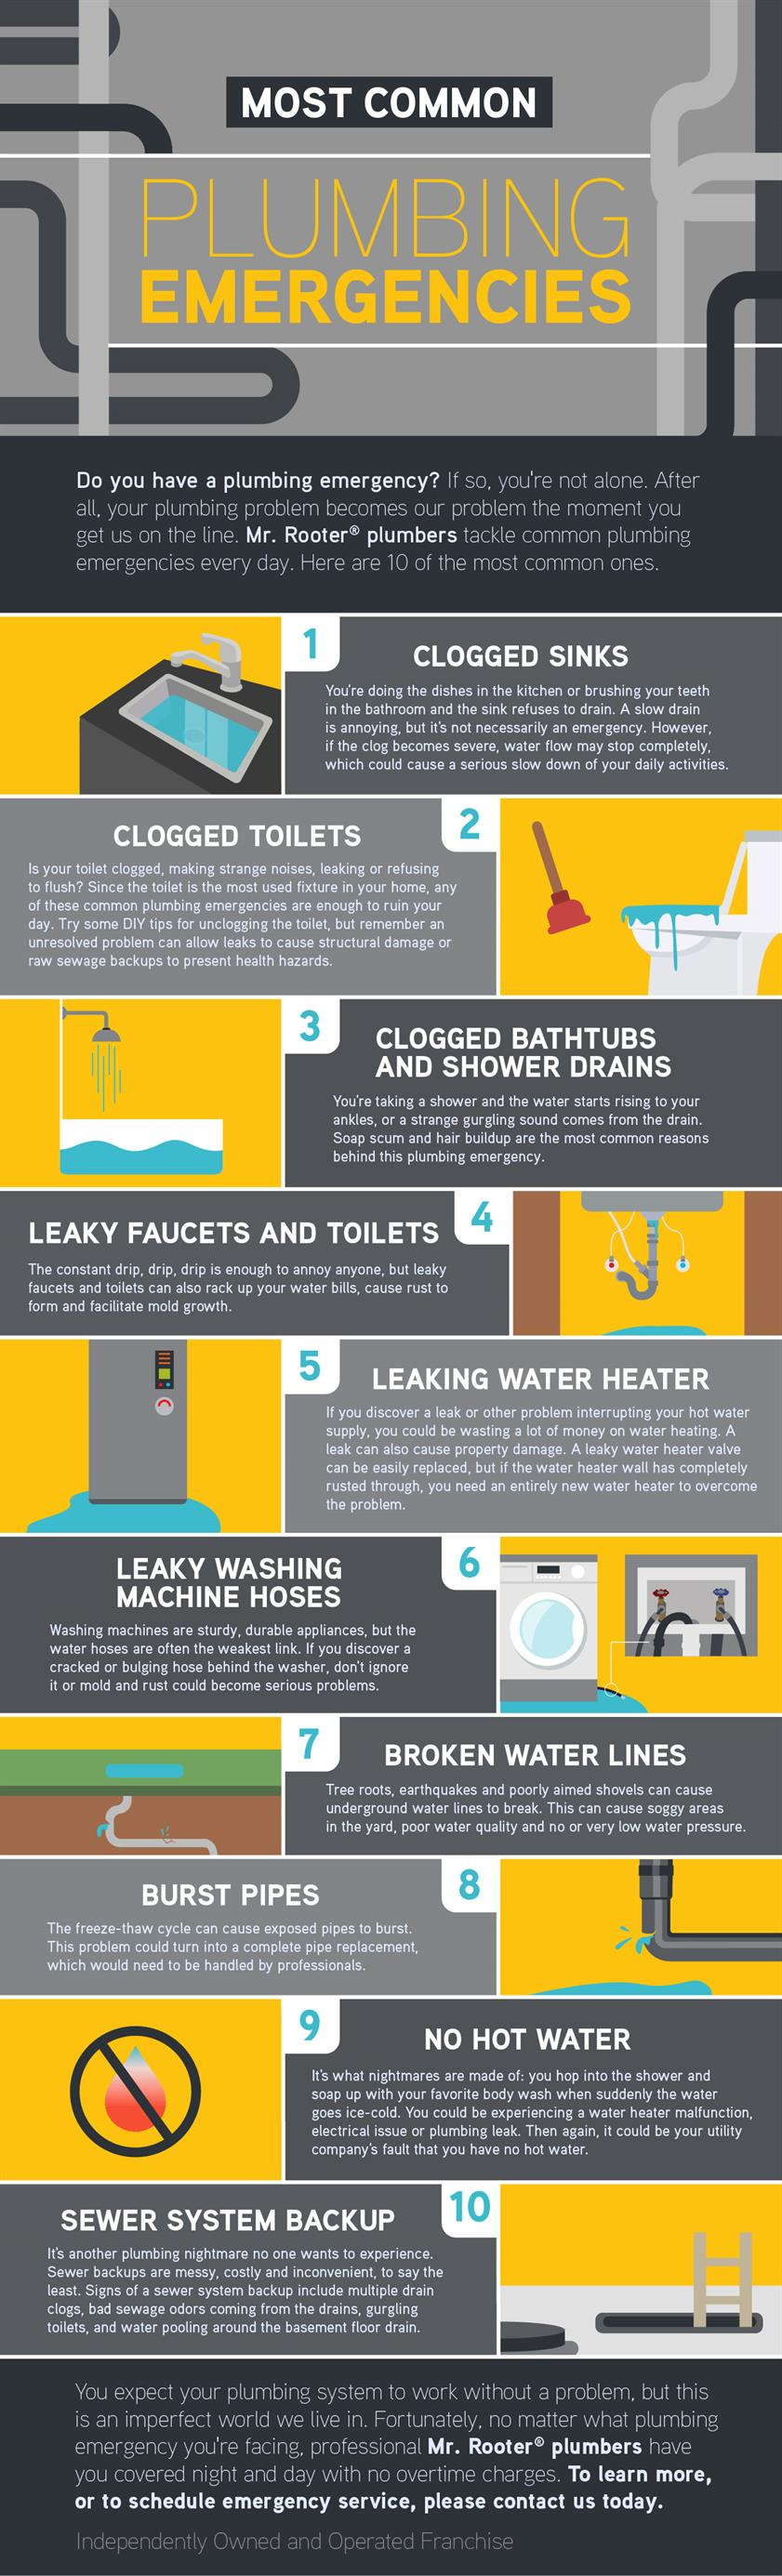 10 Common Plumbing Emergencies that Can Happen Anytime! - Infographic